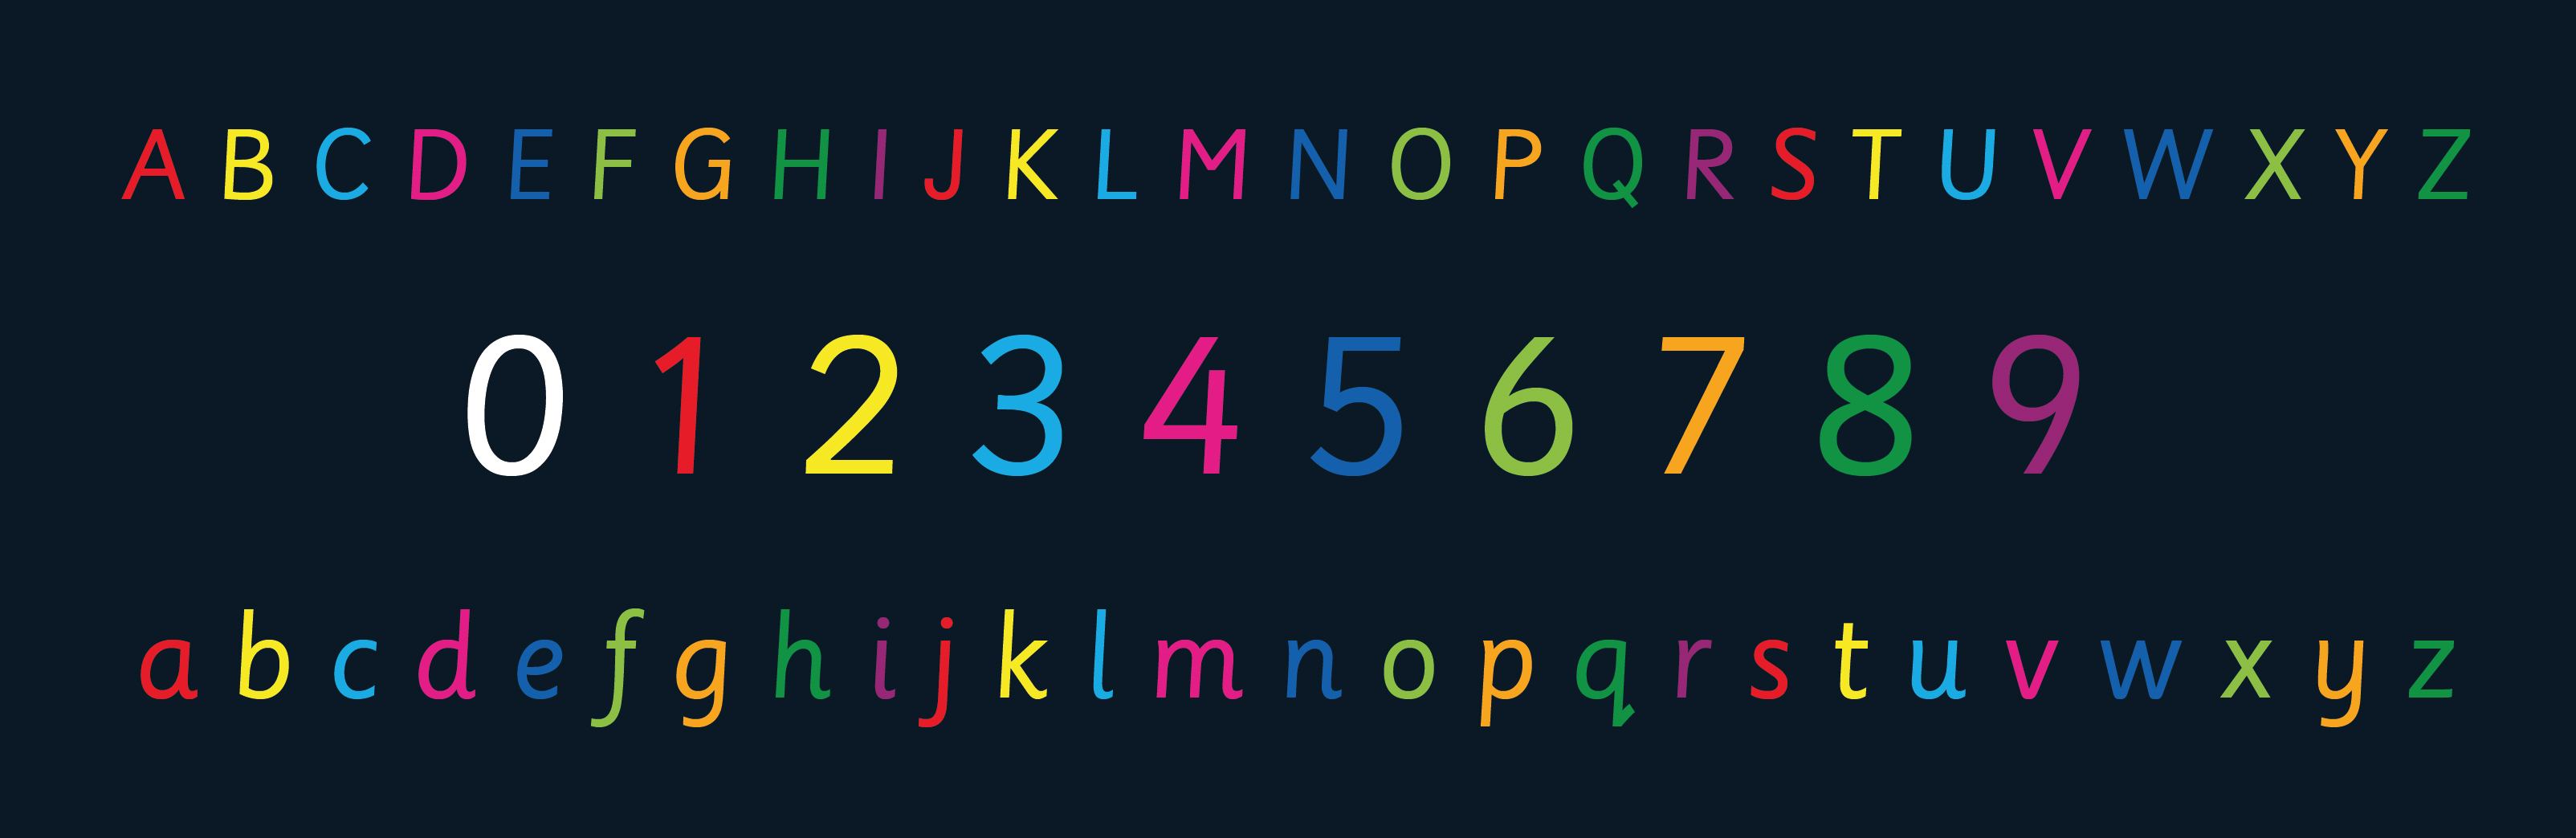 Numbers Amp Letters Thermoplastic Designs And Lines